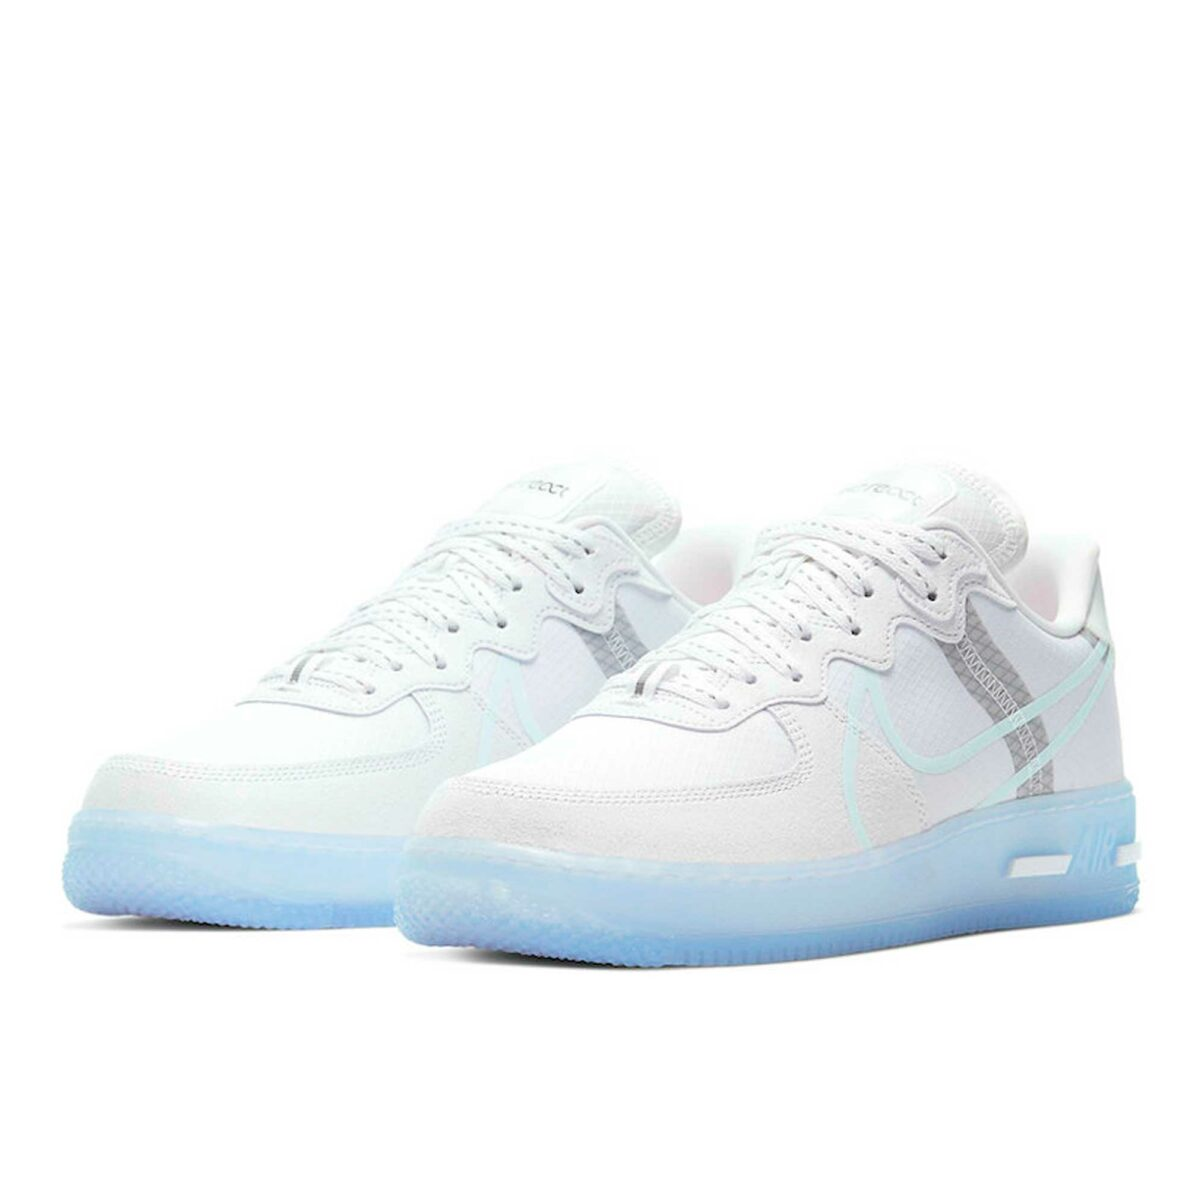 nike air force 1 react white ice CQ8879_100 купить